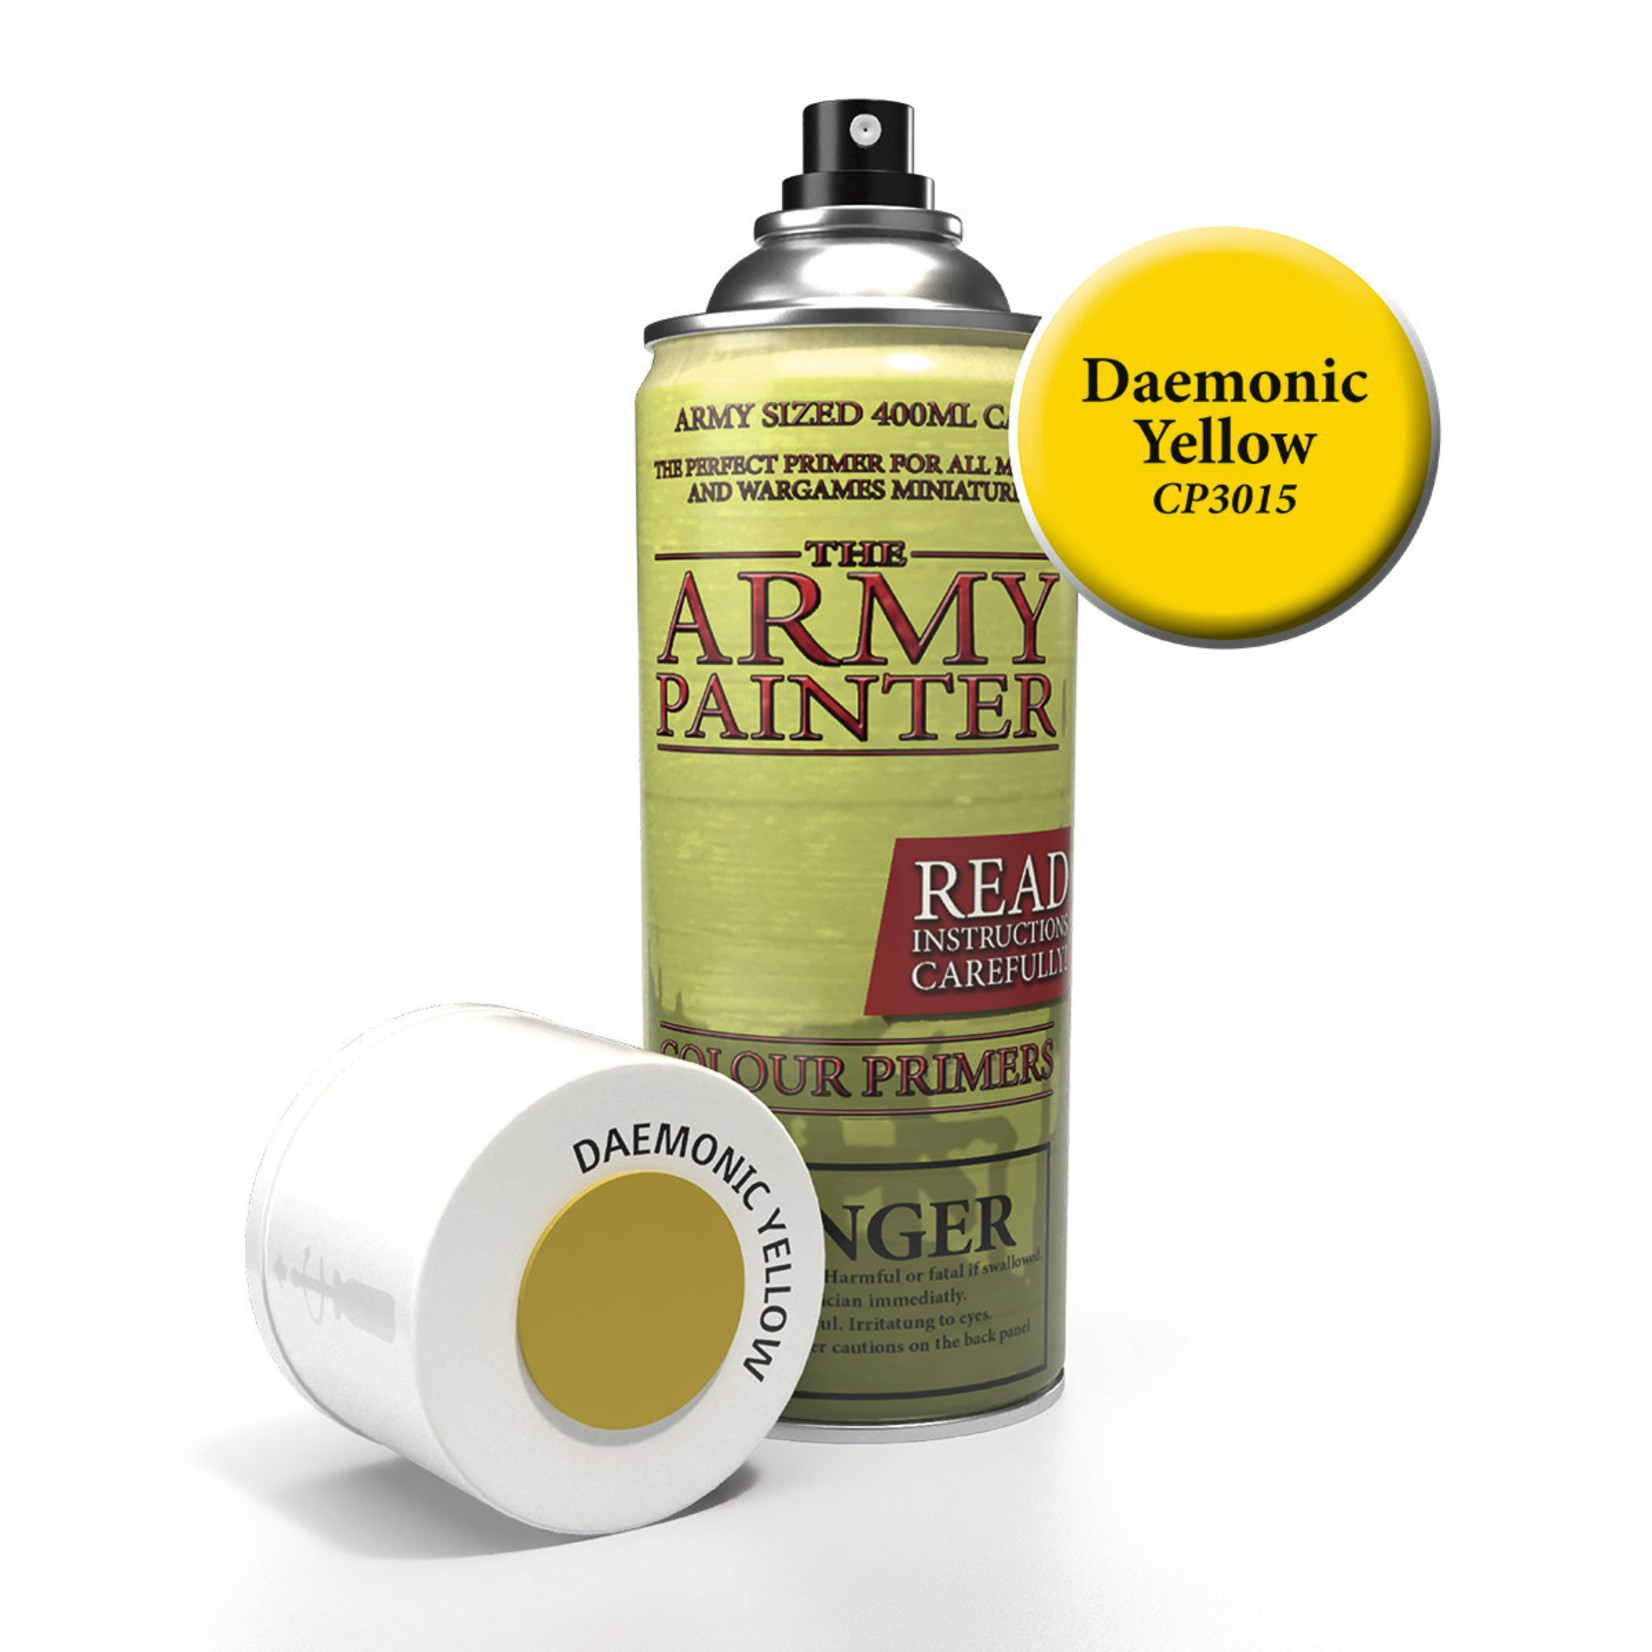 The Army Painter Color Primer Daemonic Yellow